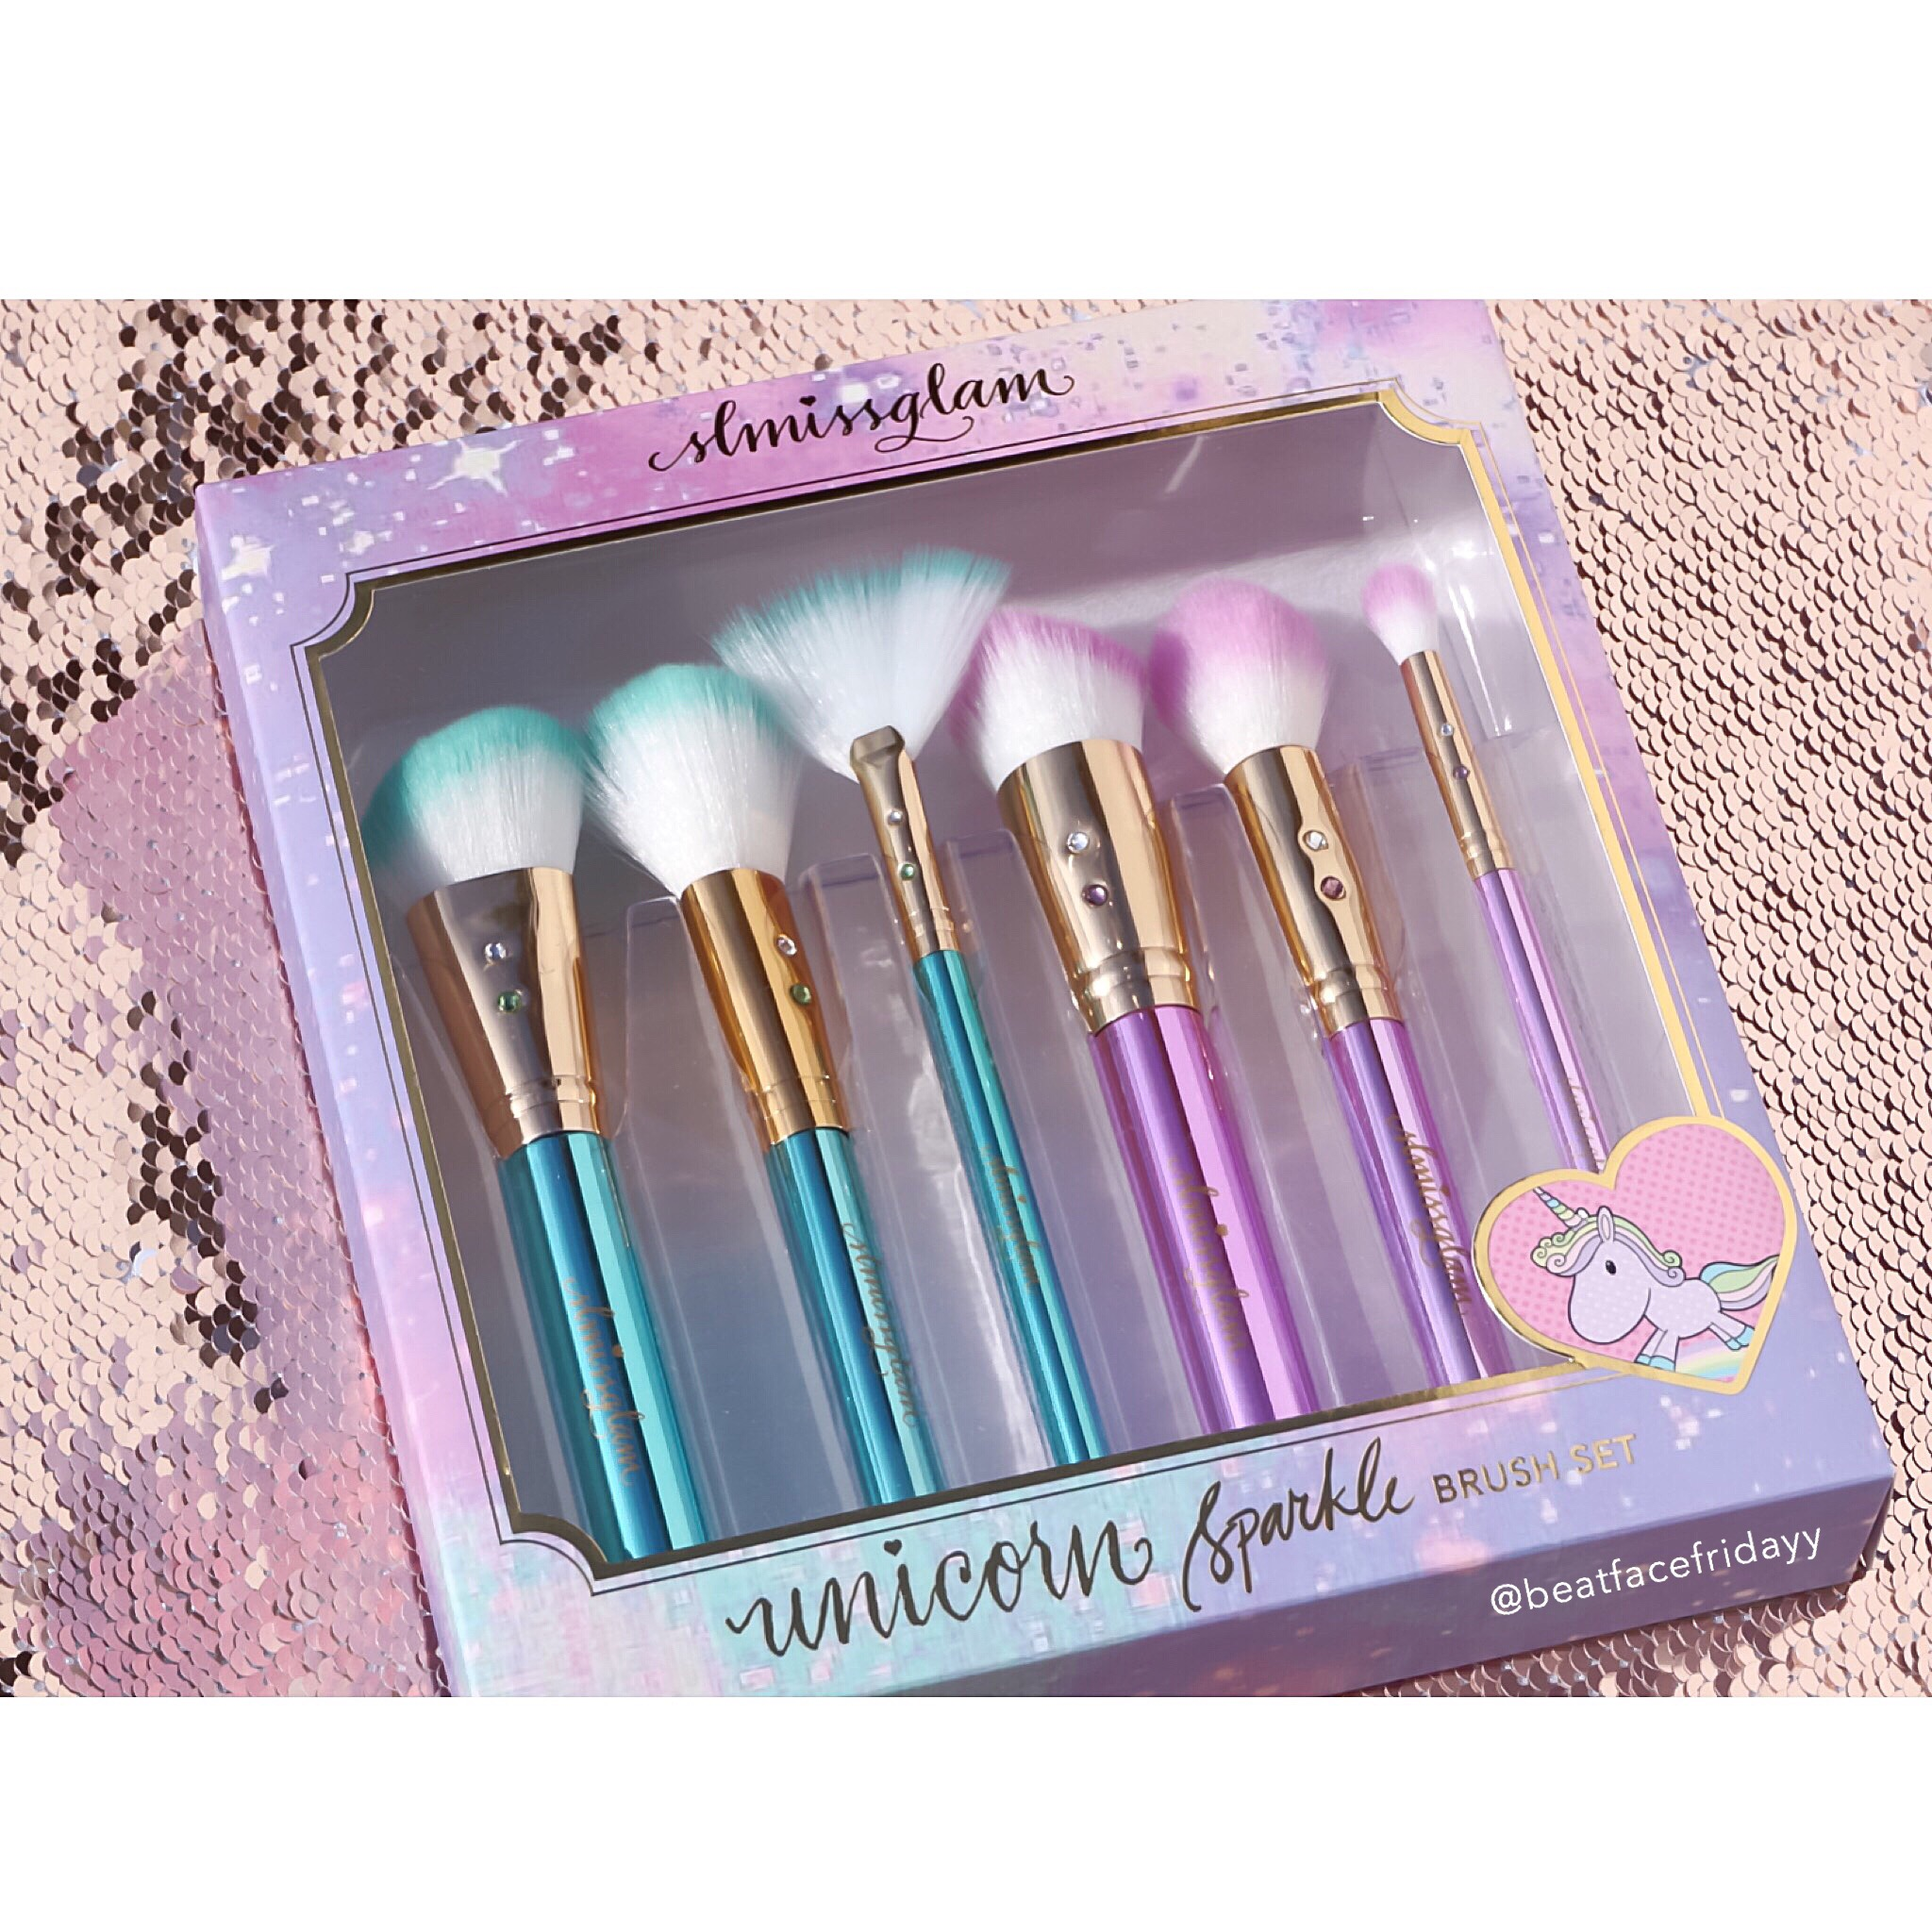 unicorn brush sets. each brush set is package and sent beautifully in pink princess boxes wrapped to perfection. stephanie, being the sweetest person she is, has offered my unicorn sets